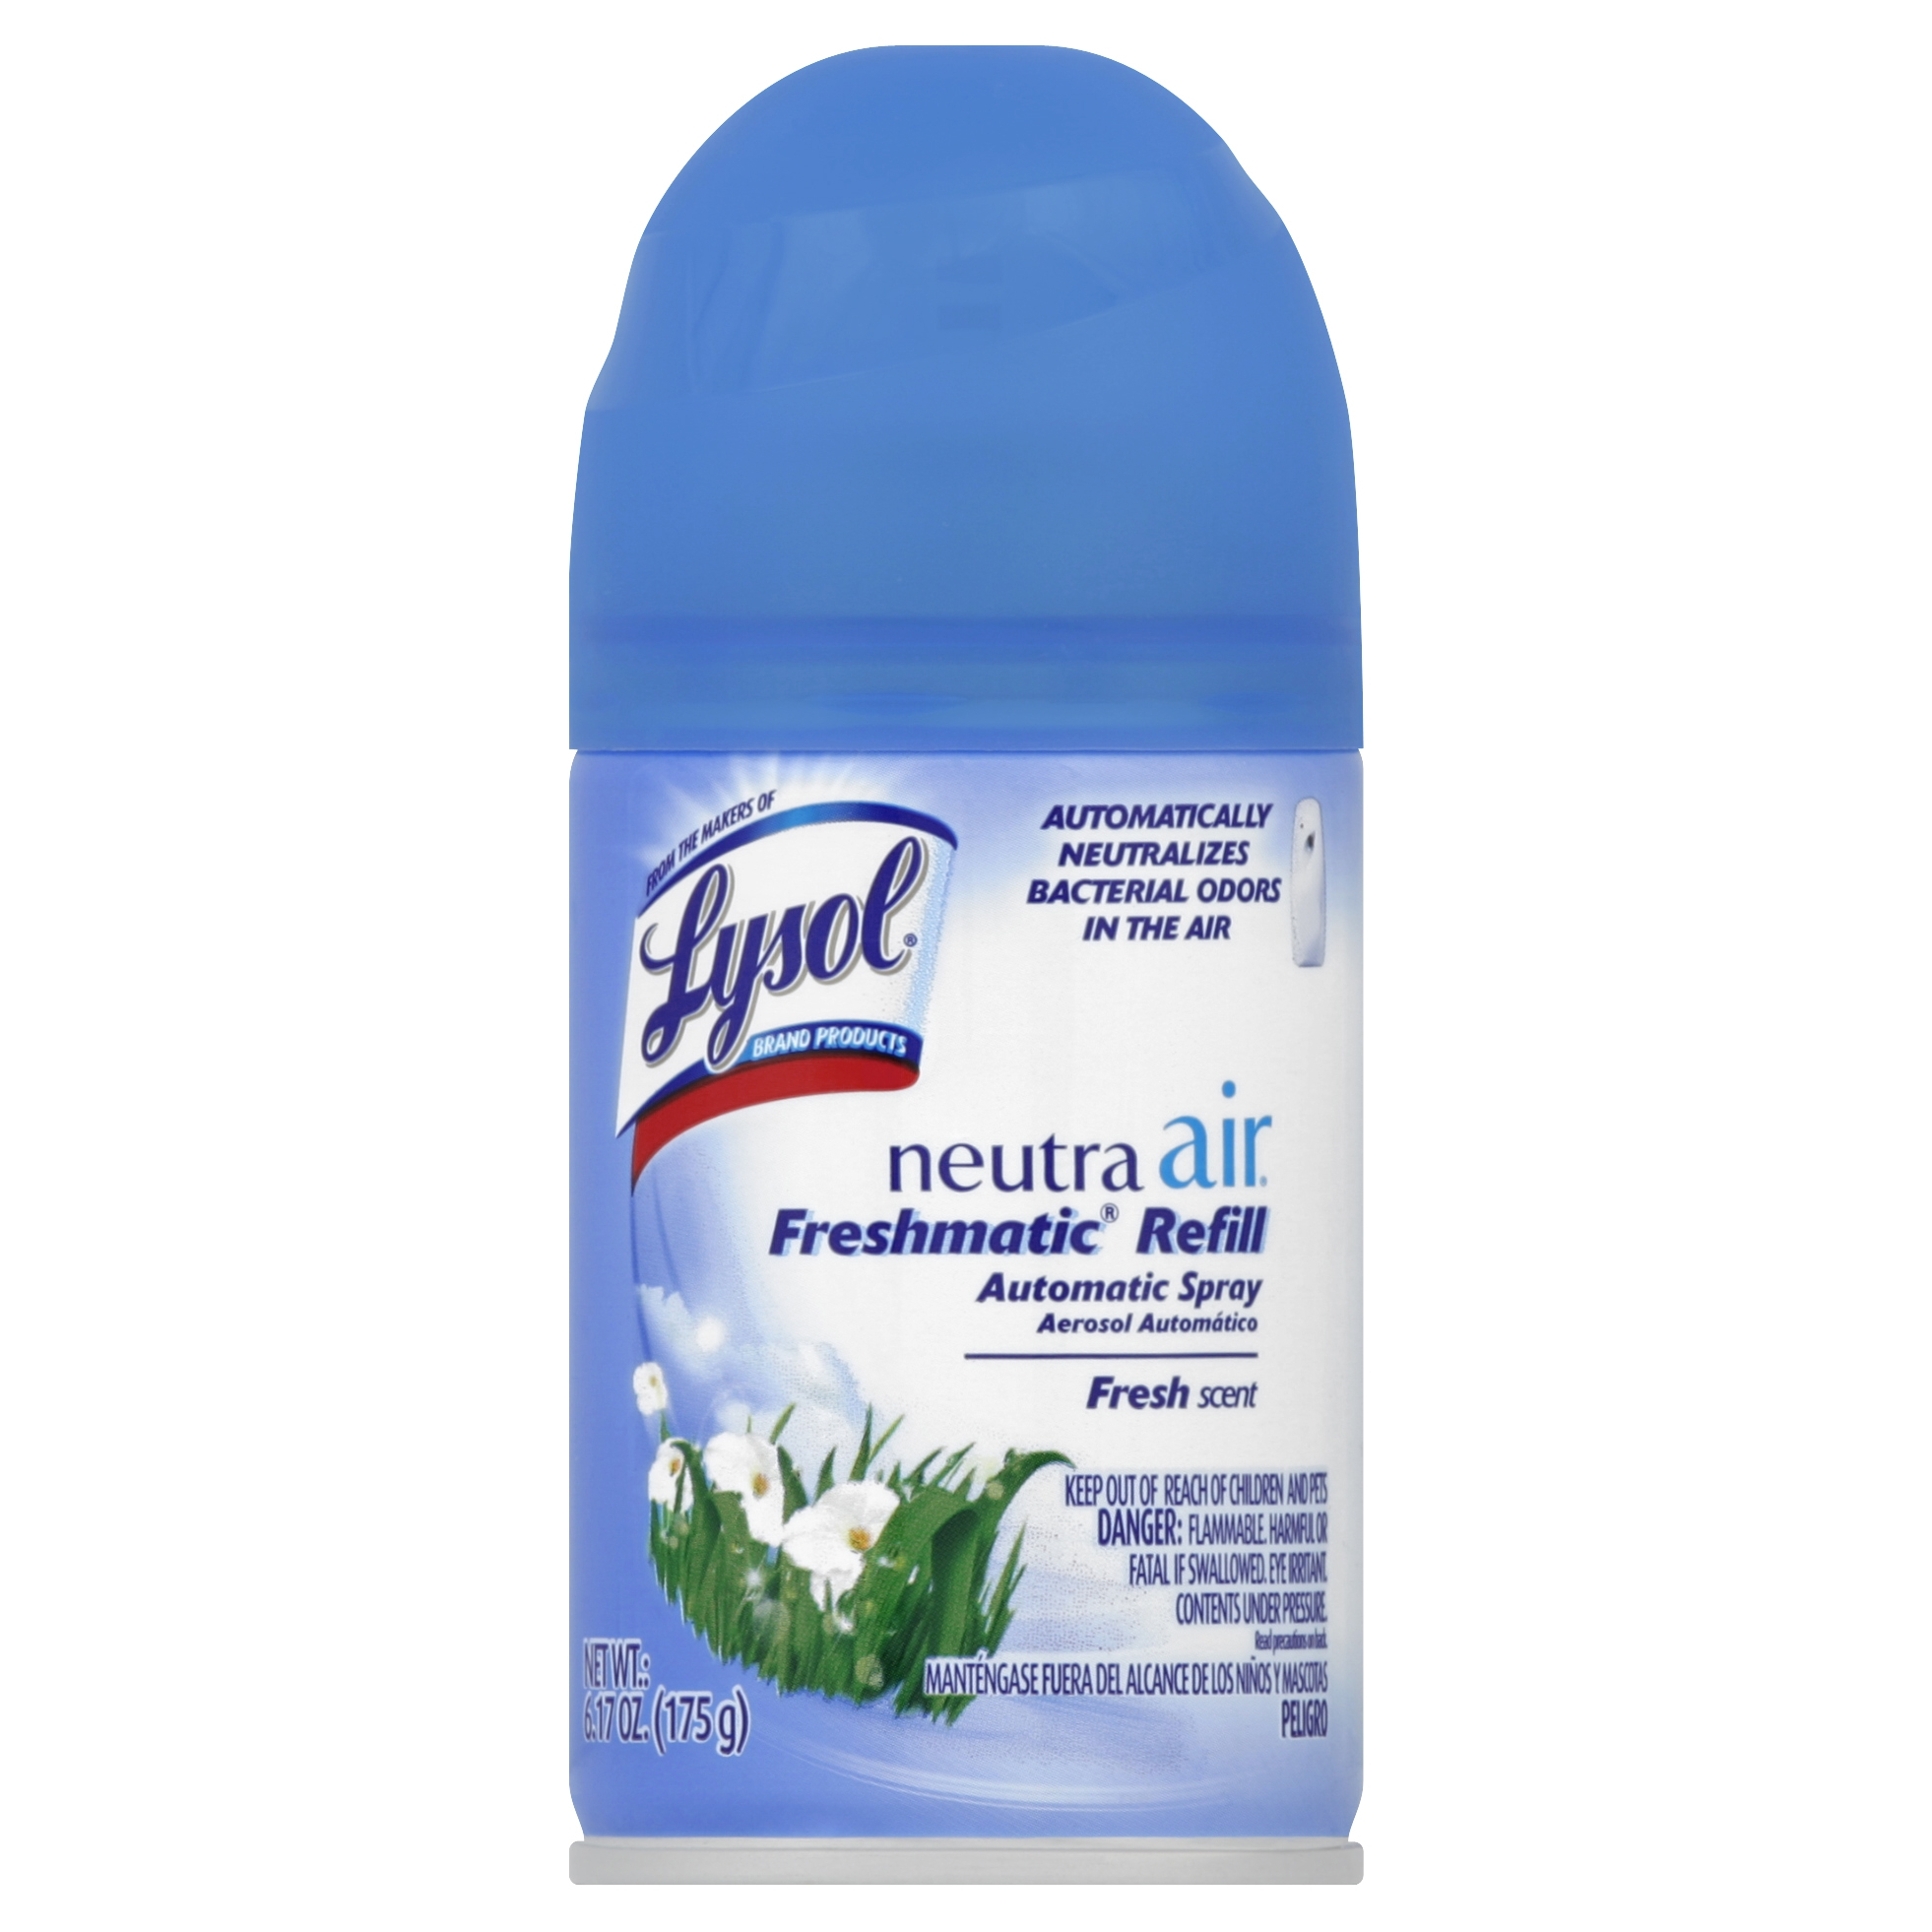 lysol neutra air freshmatic refill automatic spray fresh scent